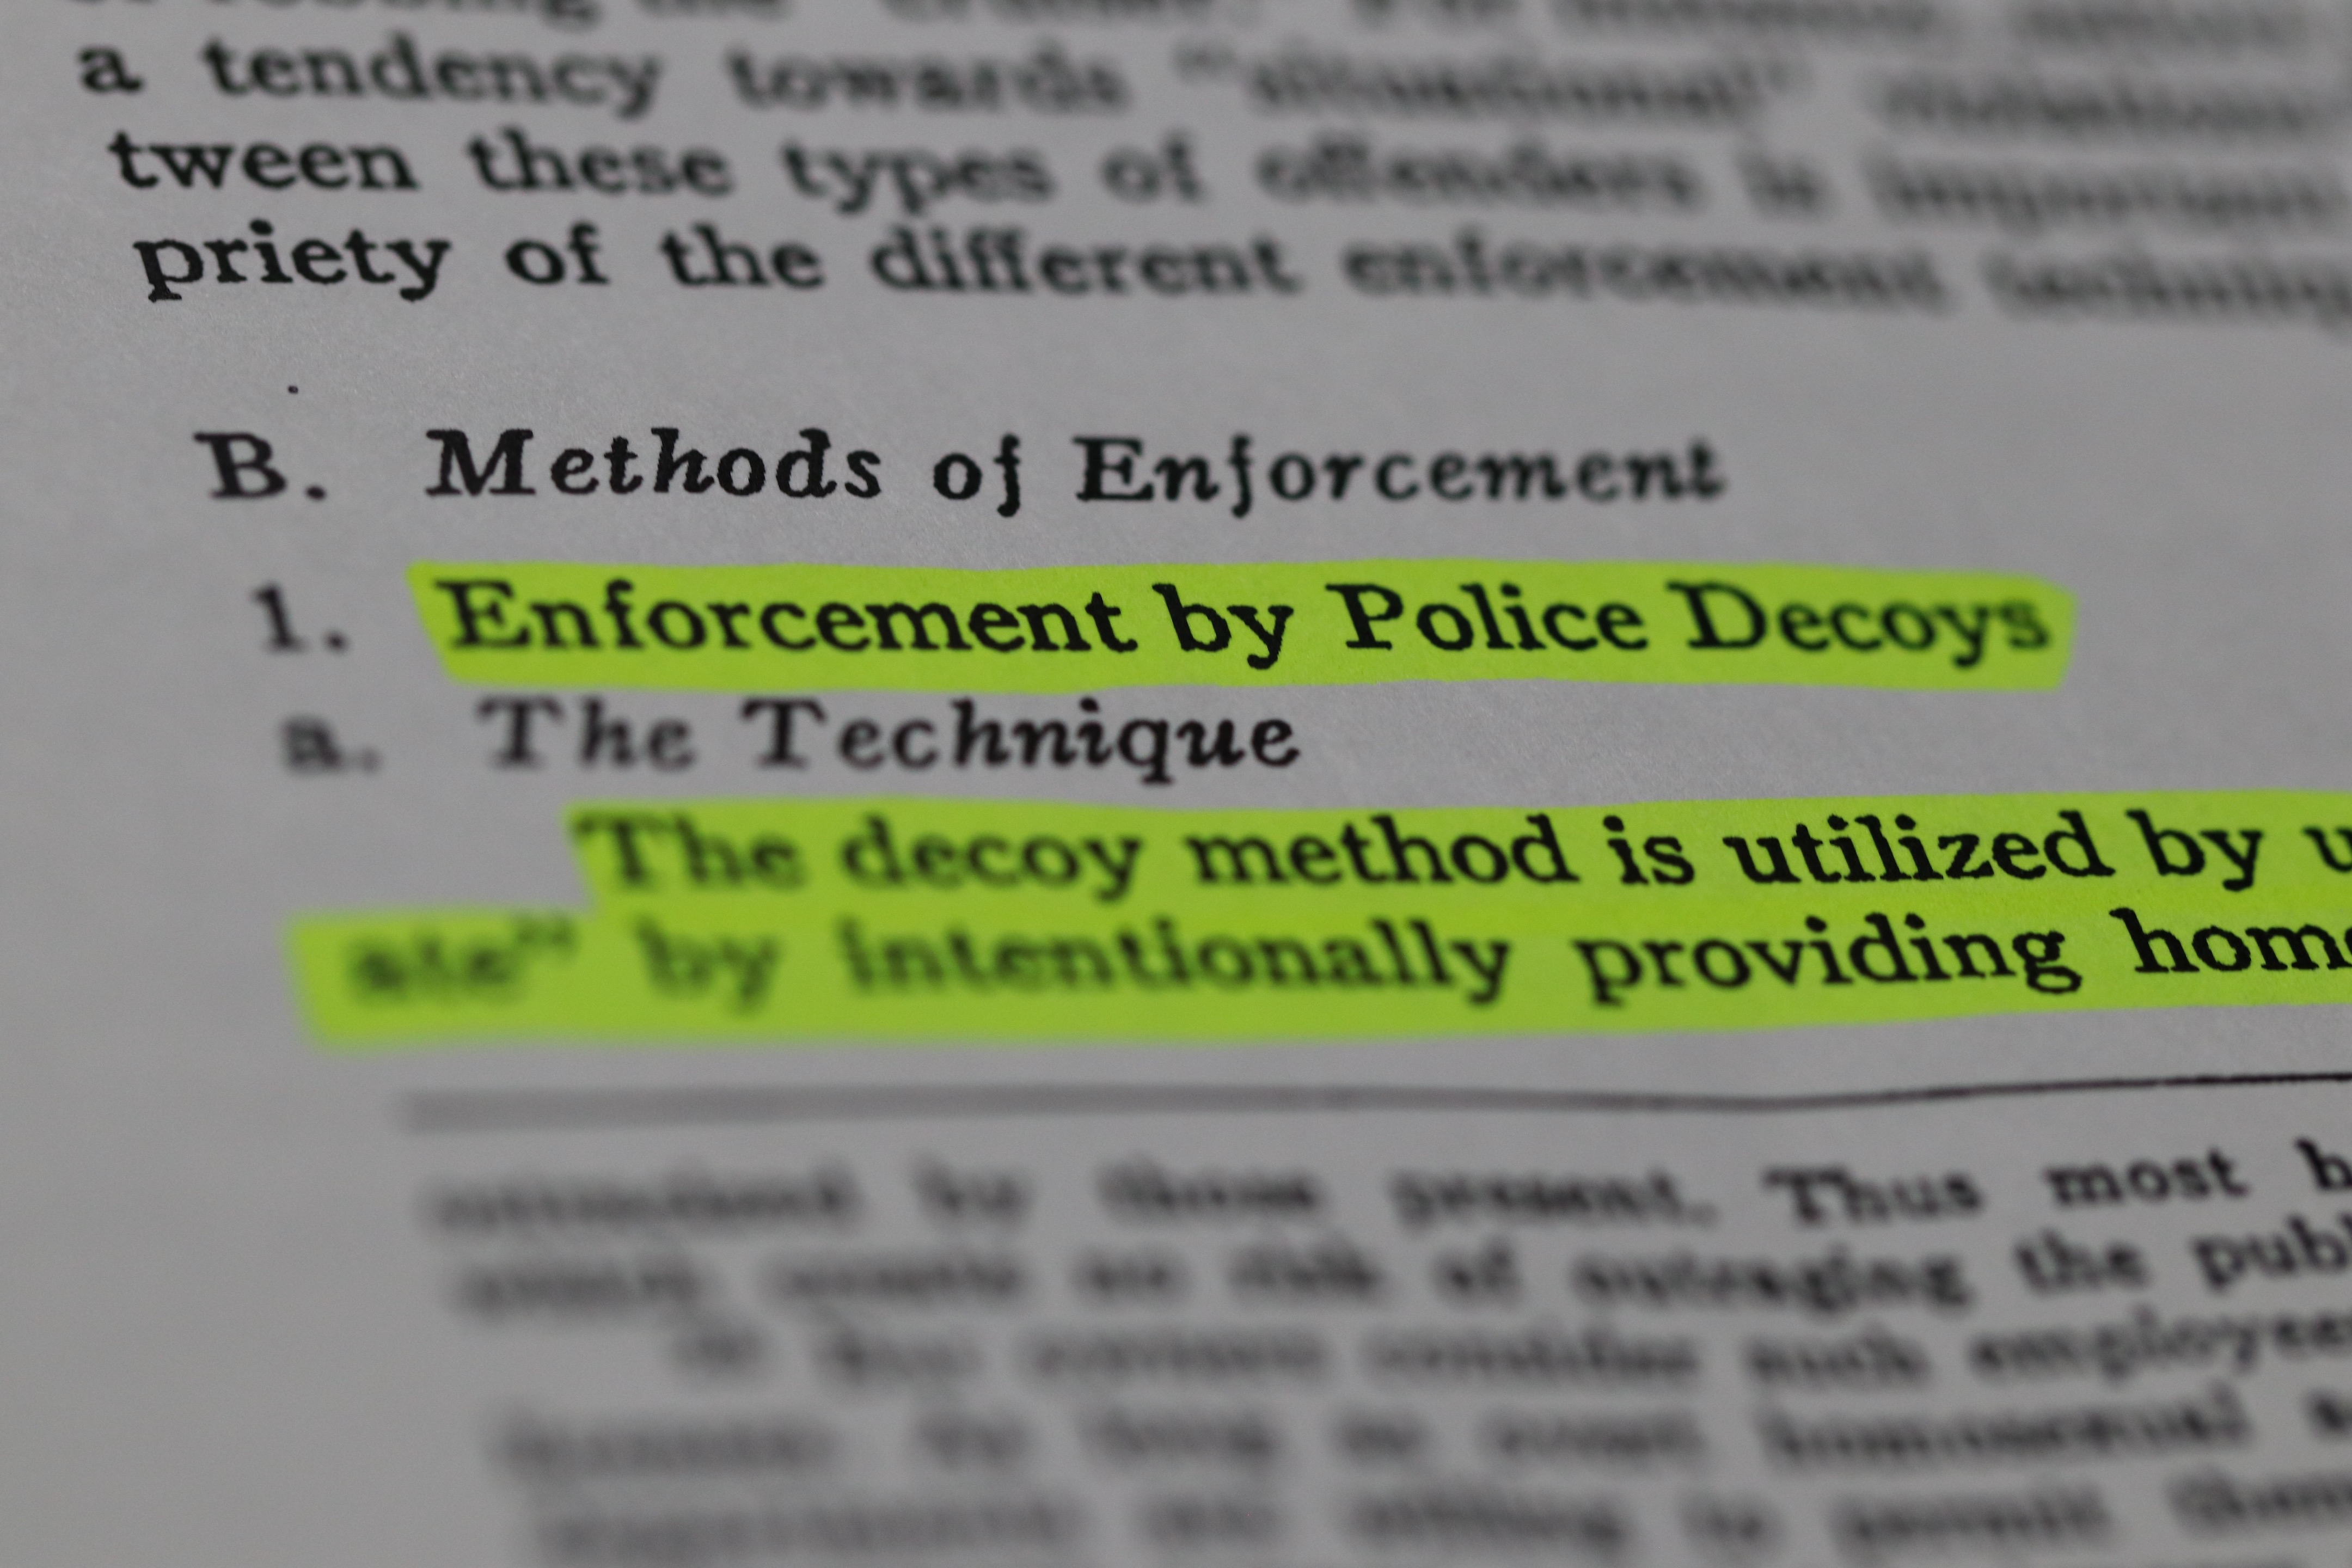 A description of police decoy operations in a paper published in the 1965-66 UCLA Law Review titled